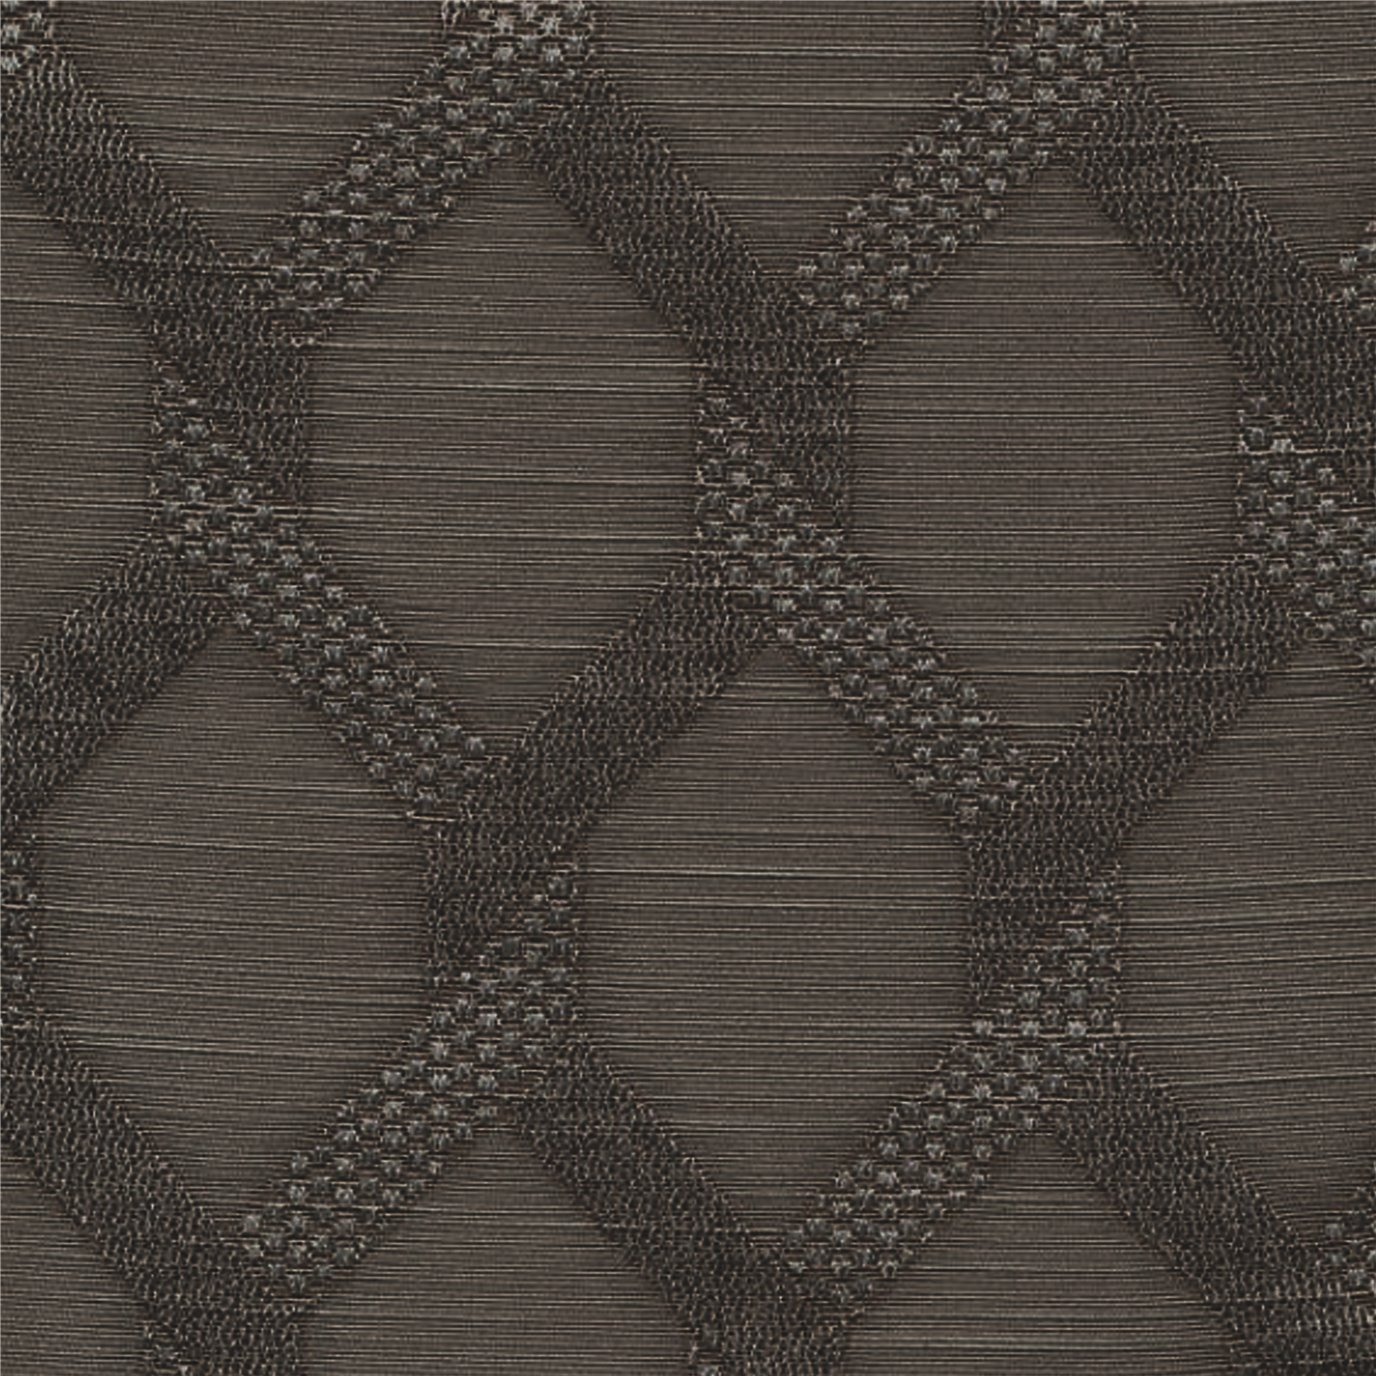 Malden Charcoal Fabric by the Yard